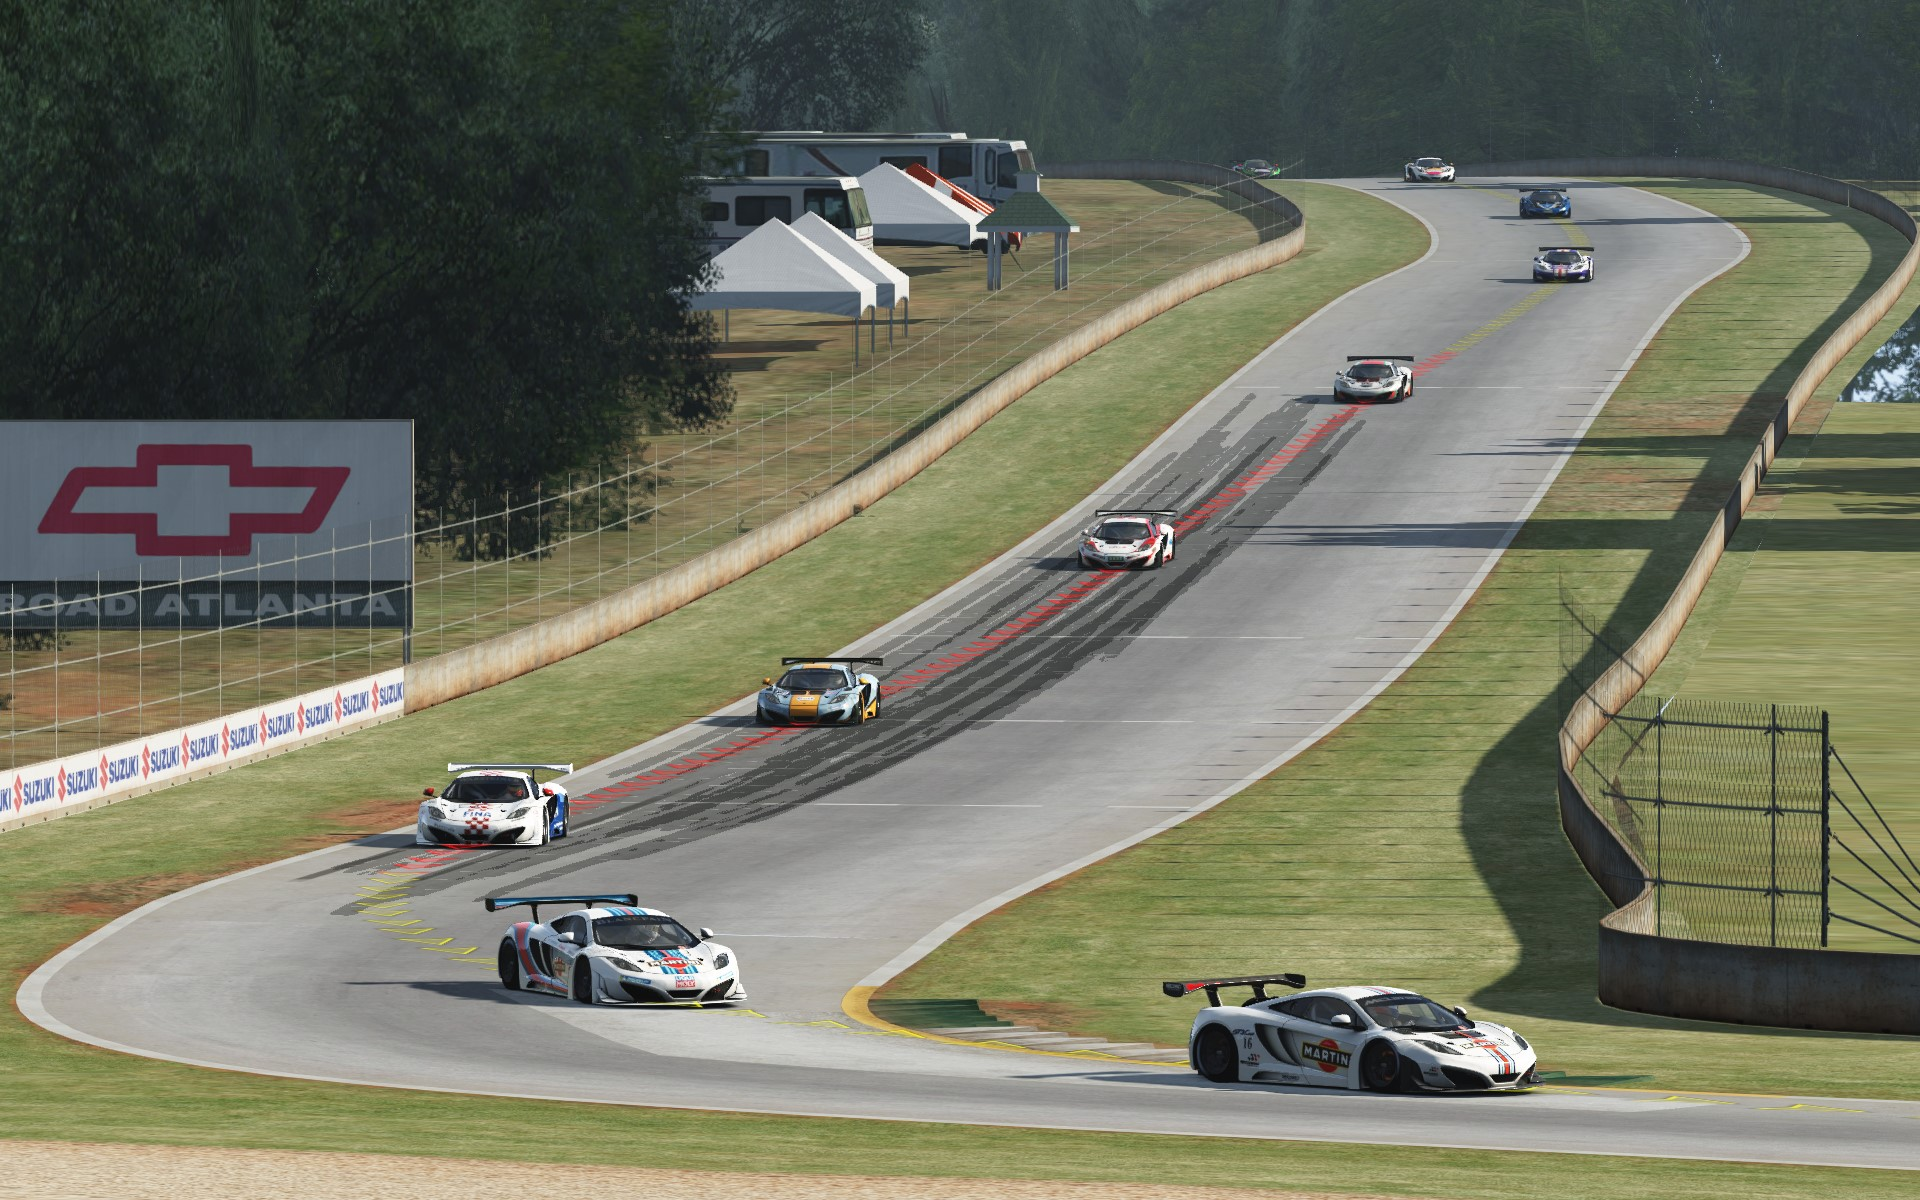 Screenshot_mclaren_mp412c_gt3_road atlanta_10-8-115-14-2-22.jpg